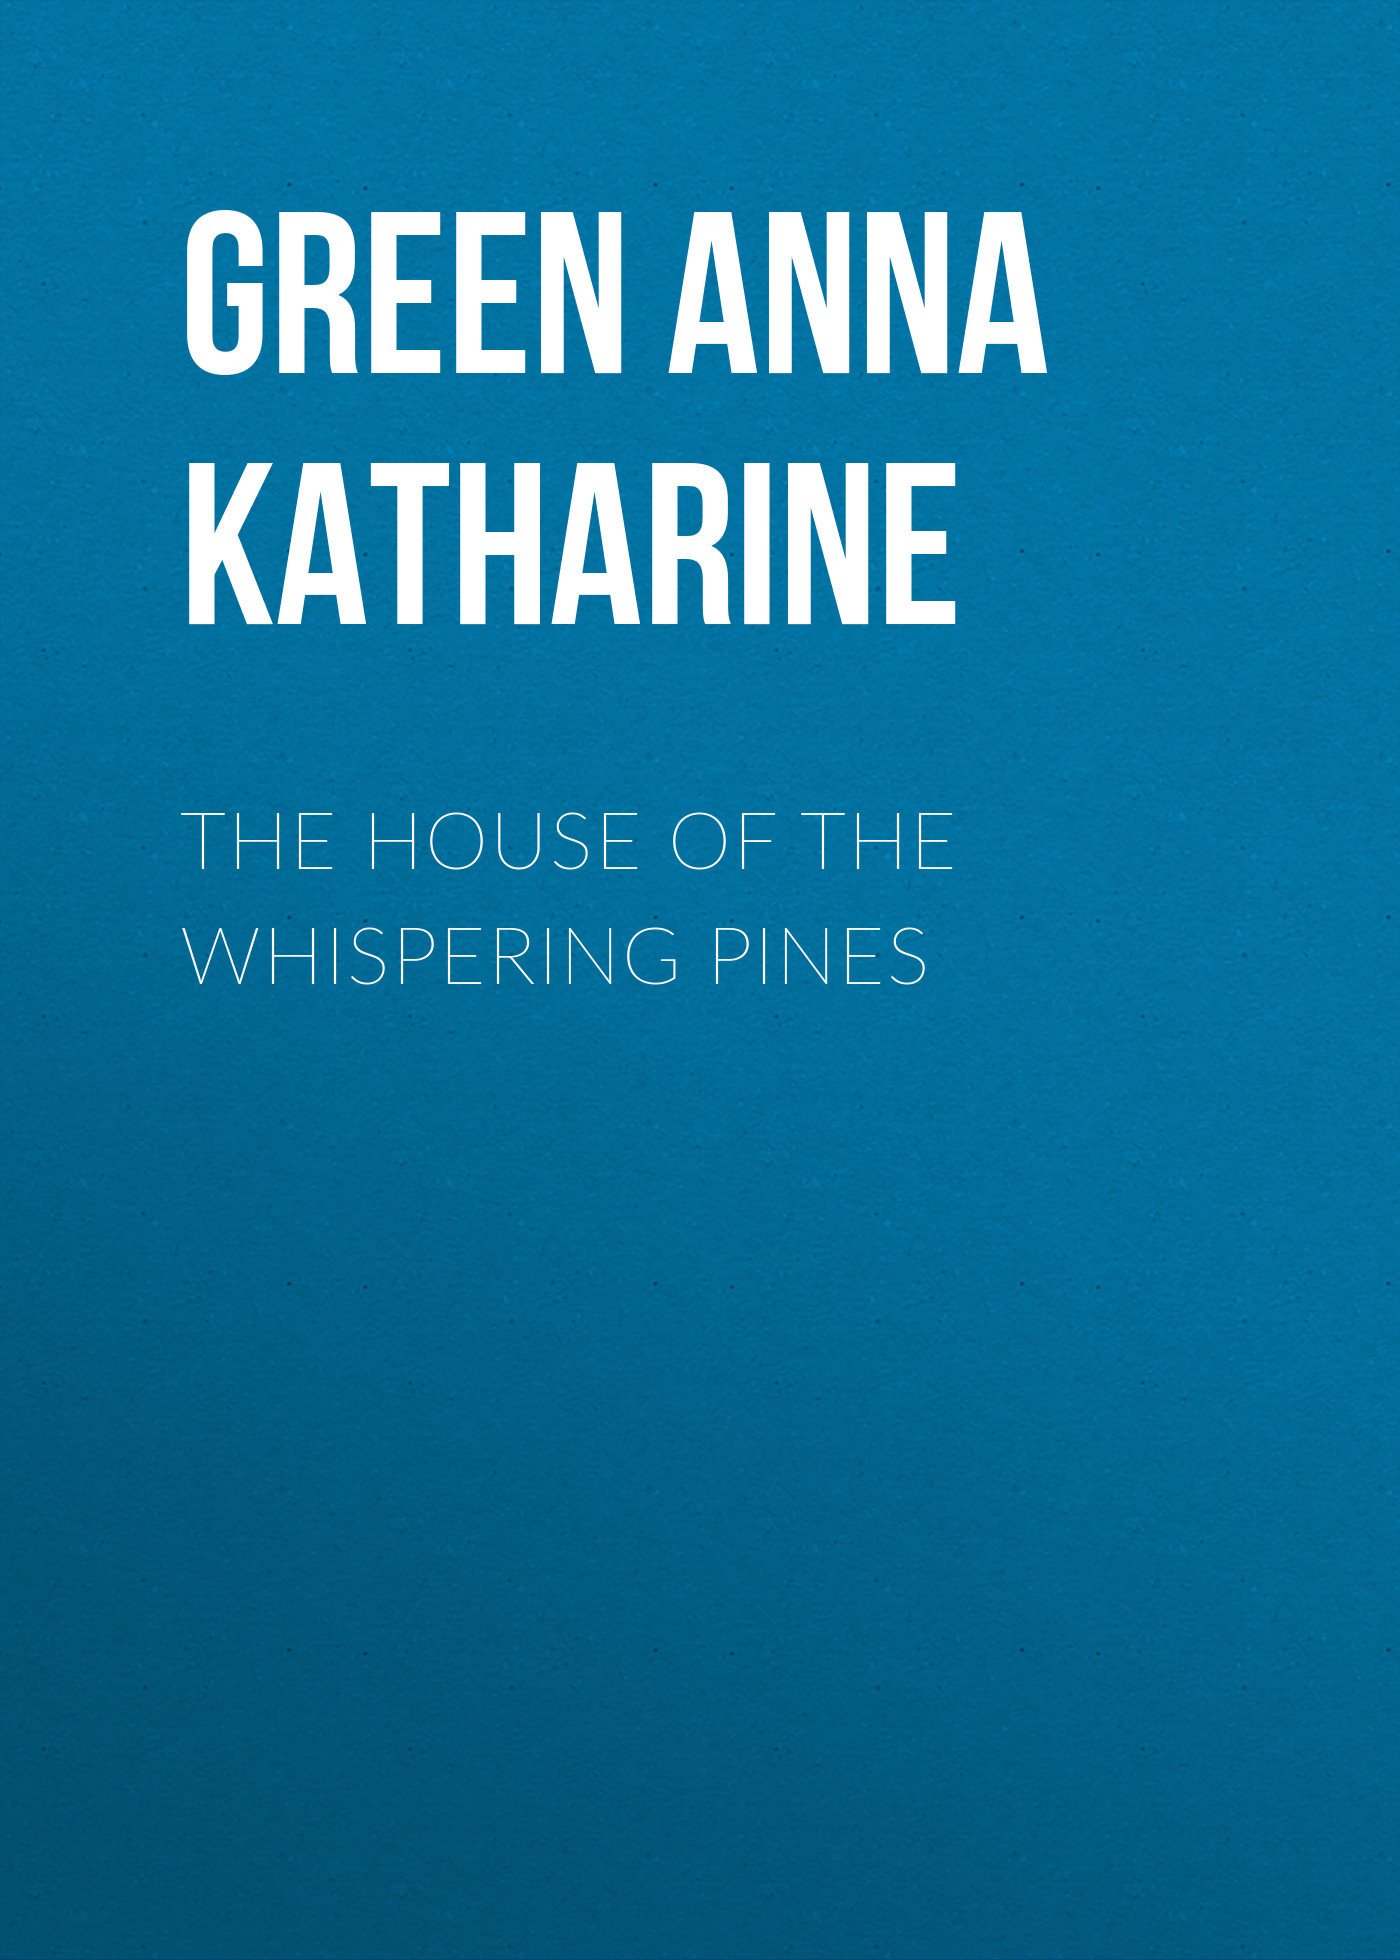 Green Anna Katharine The House of the Whispering Pines